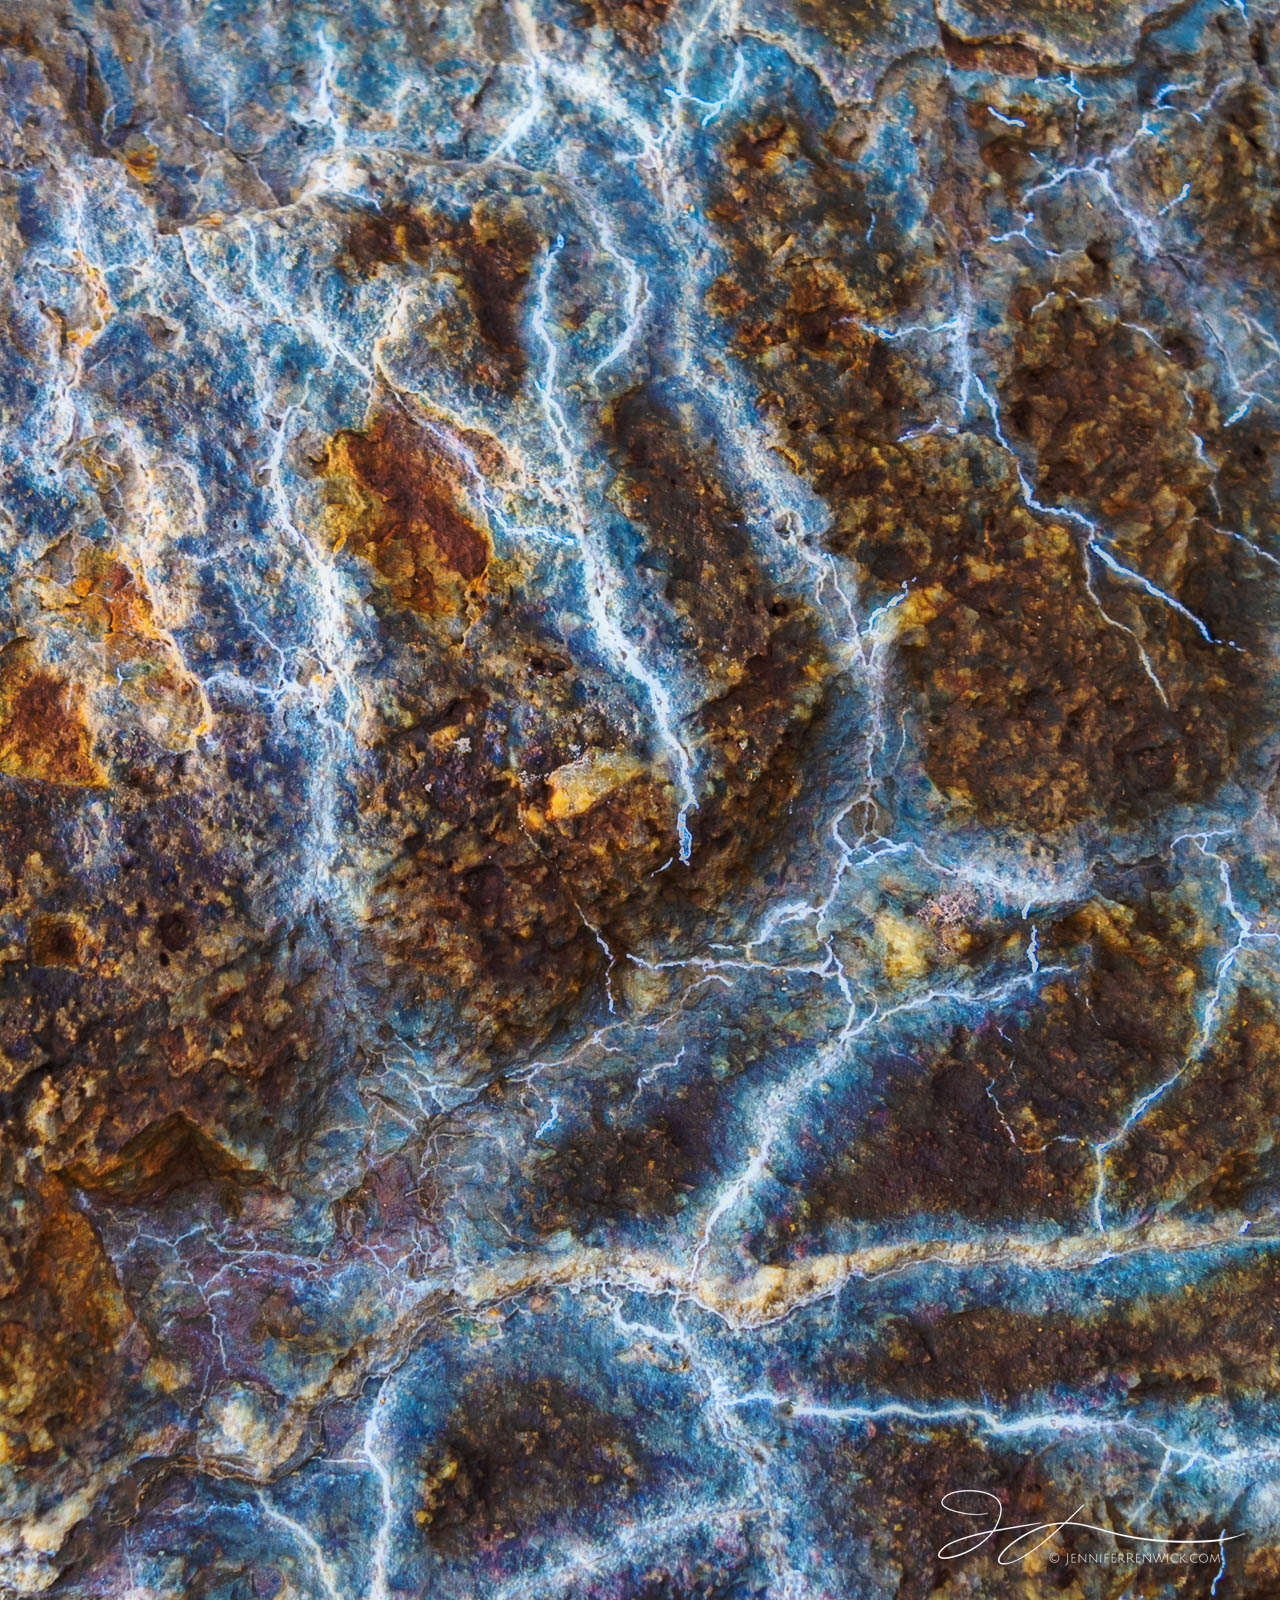 Patterns on a rock resemble electric currents.